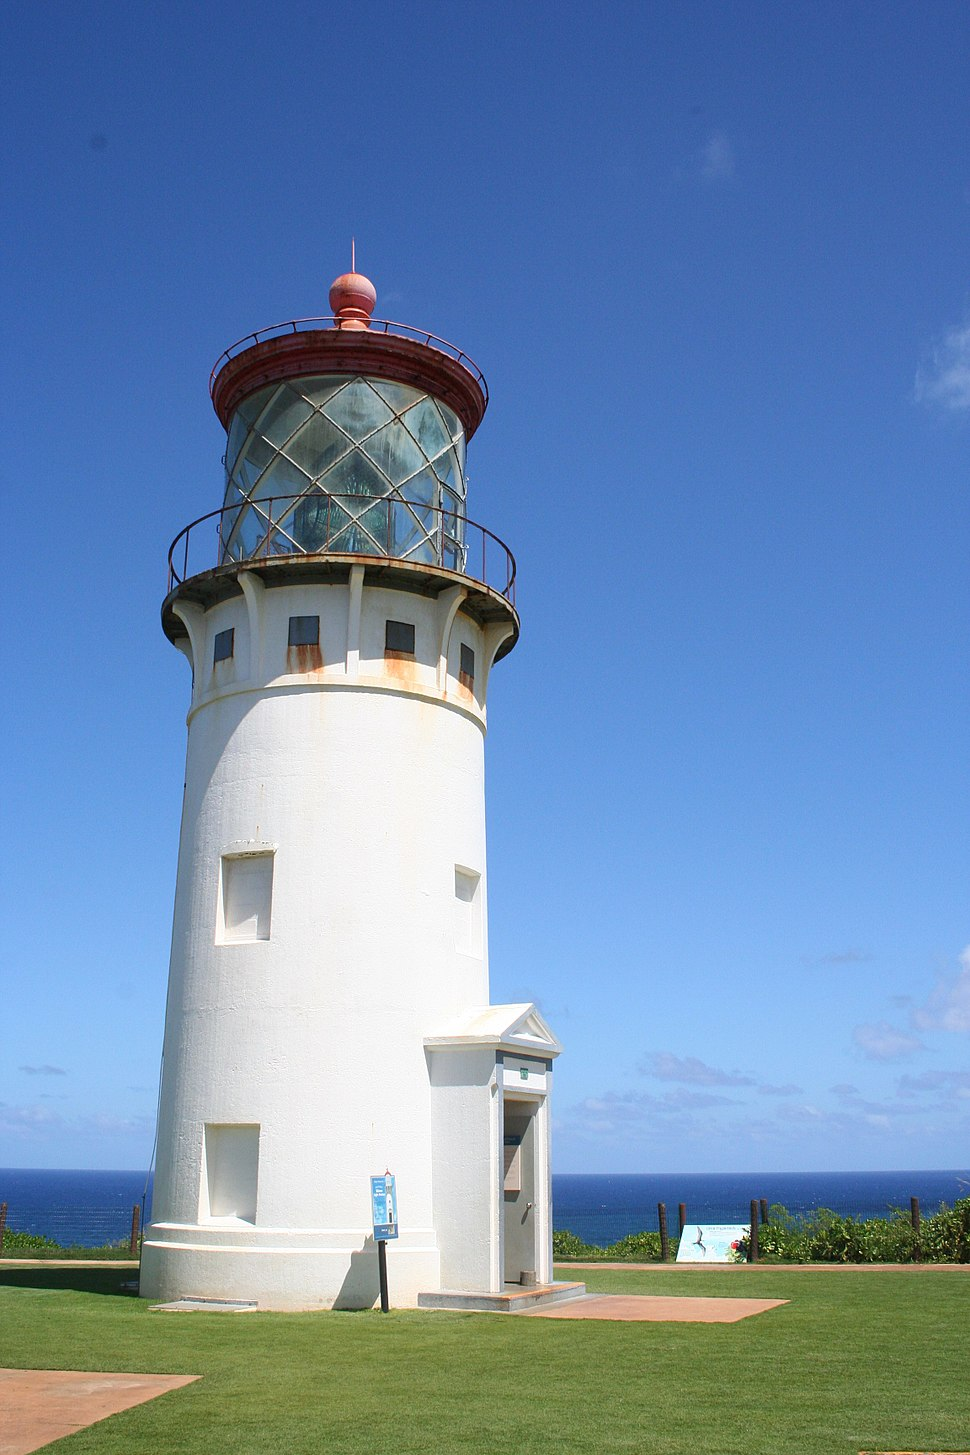 Kilauea Lighthouse (circa 2006)